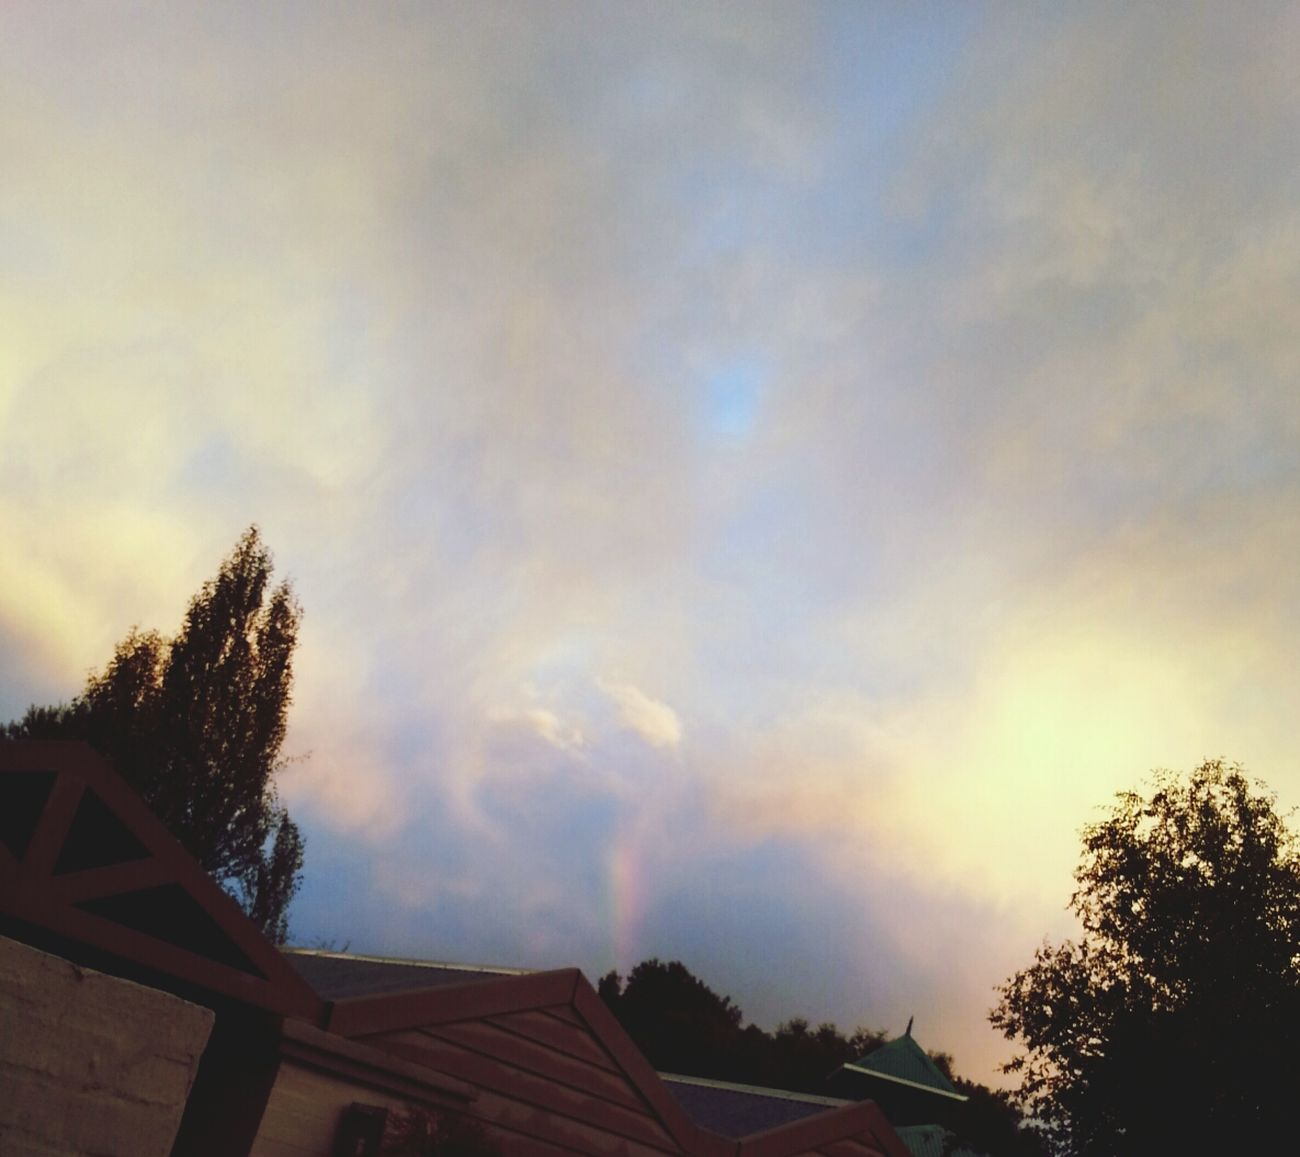 Rainbow outside. ♥ Rainbow Clouds Sky Heaven